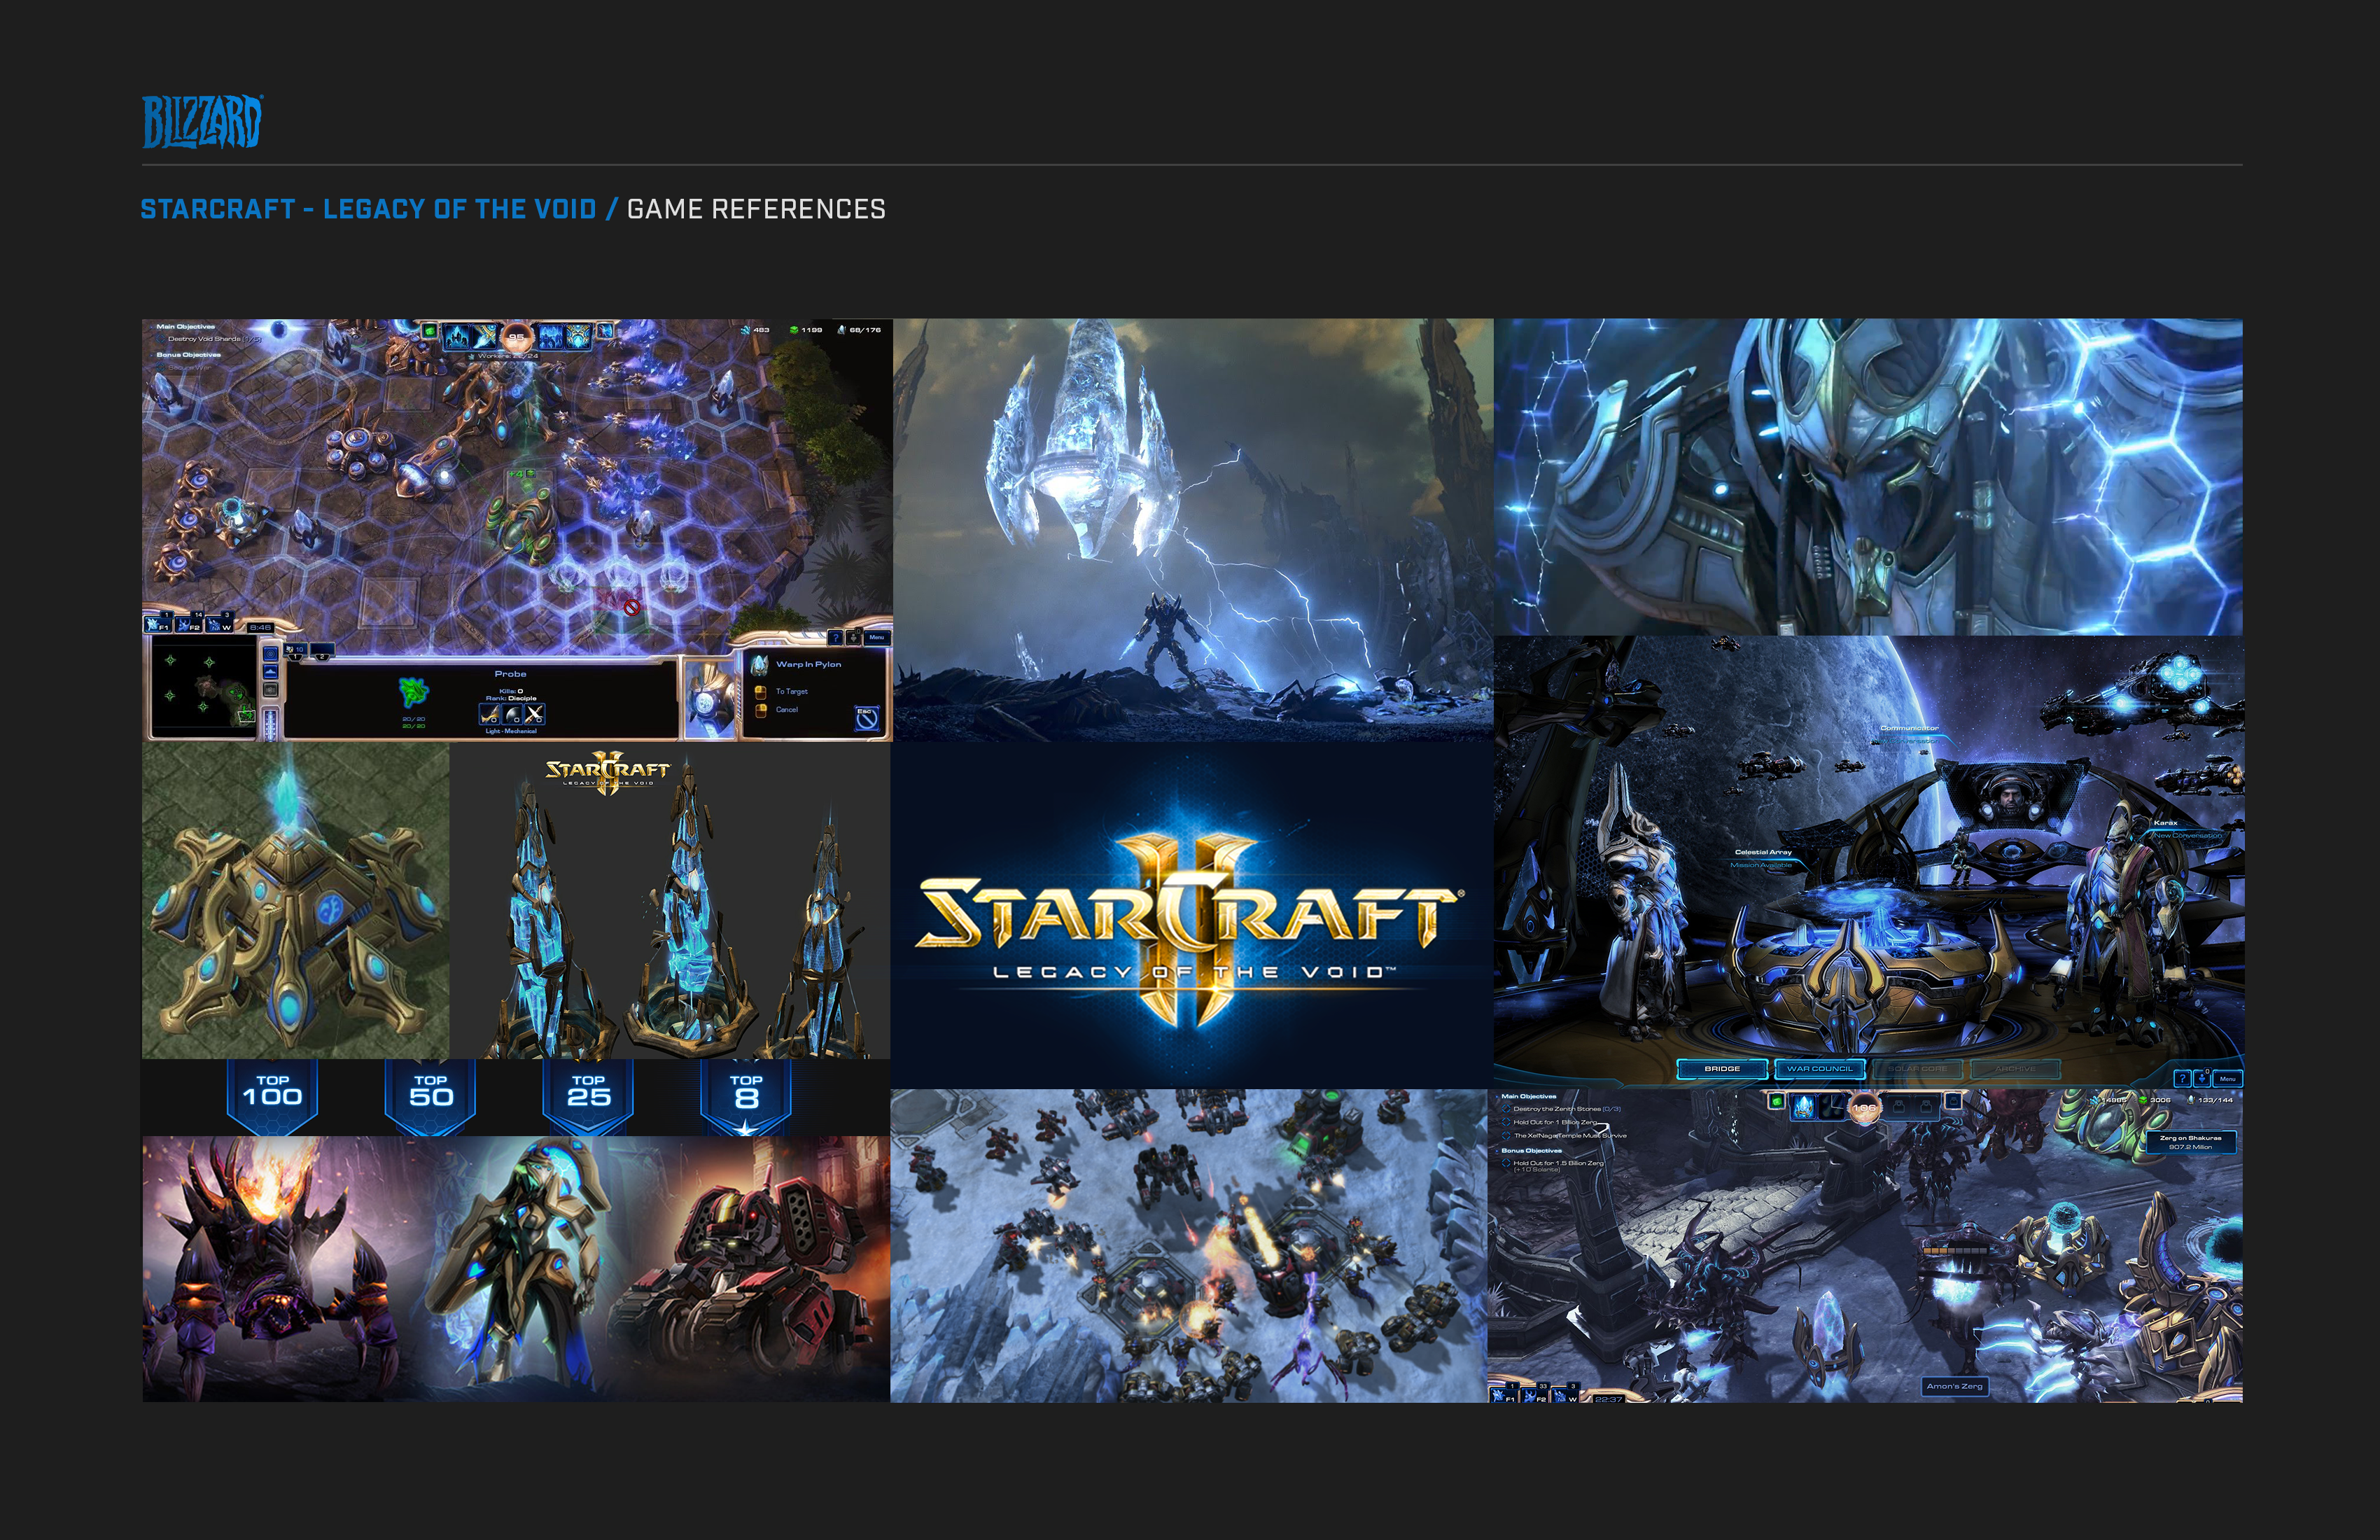 Blizzard_MoGraph_Test_Starcraft_Game_Reference_v1b